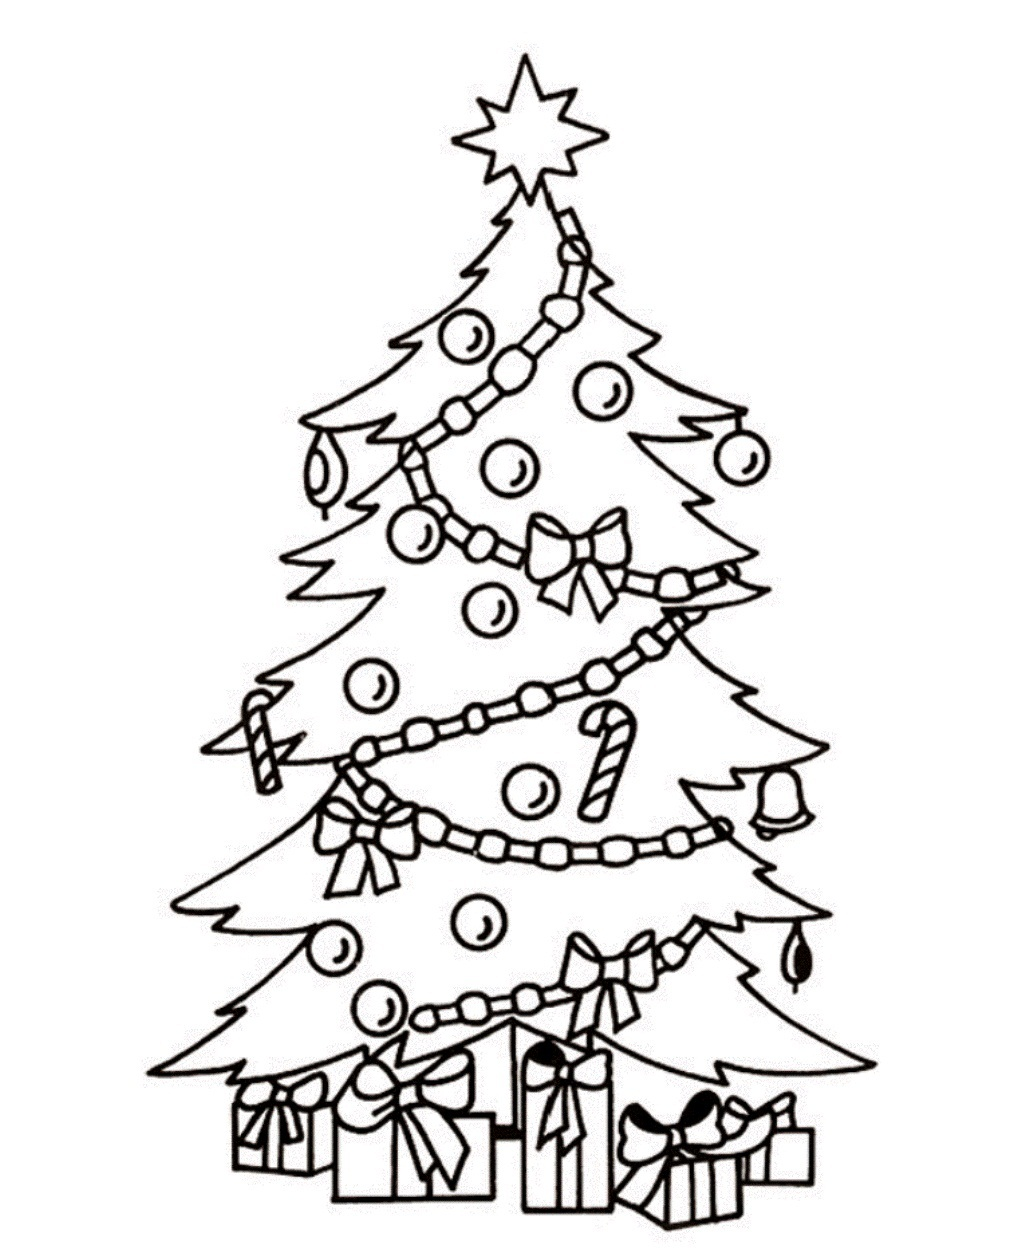 Coloring Pages For Under : Presents coloring pages best for kids